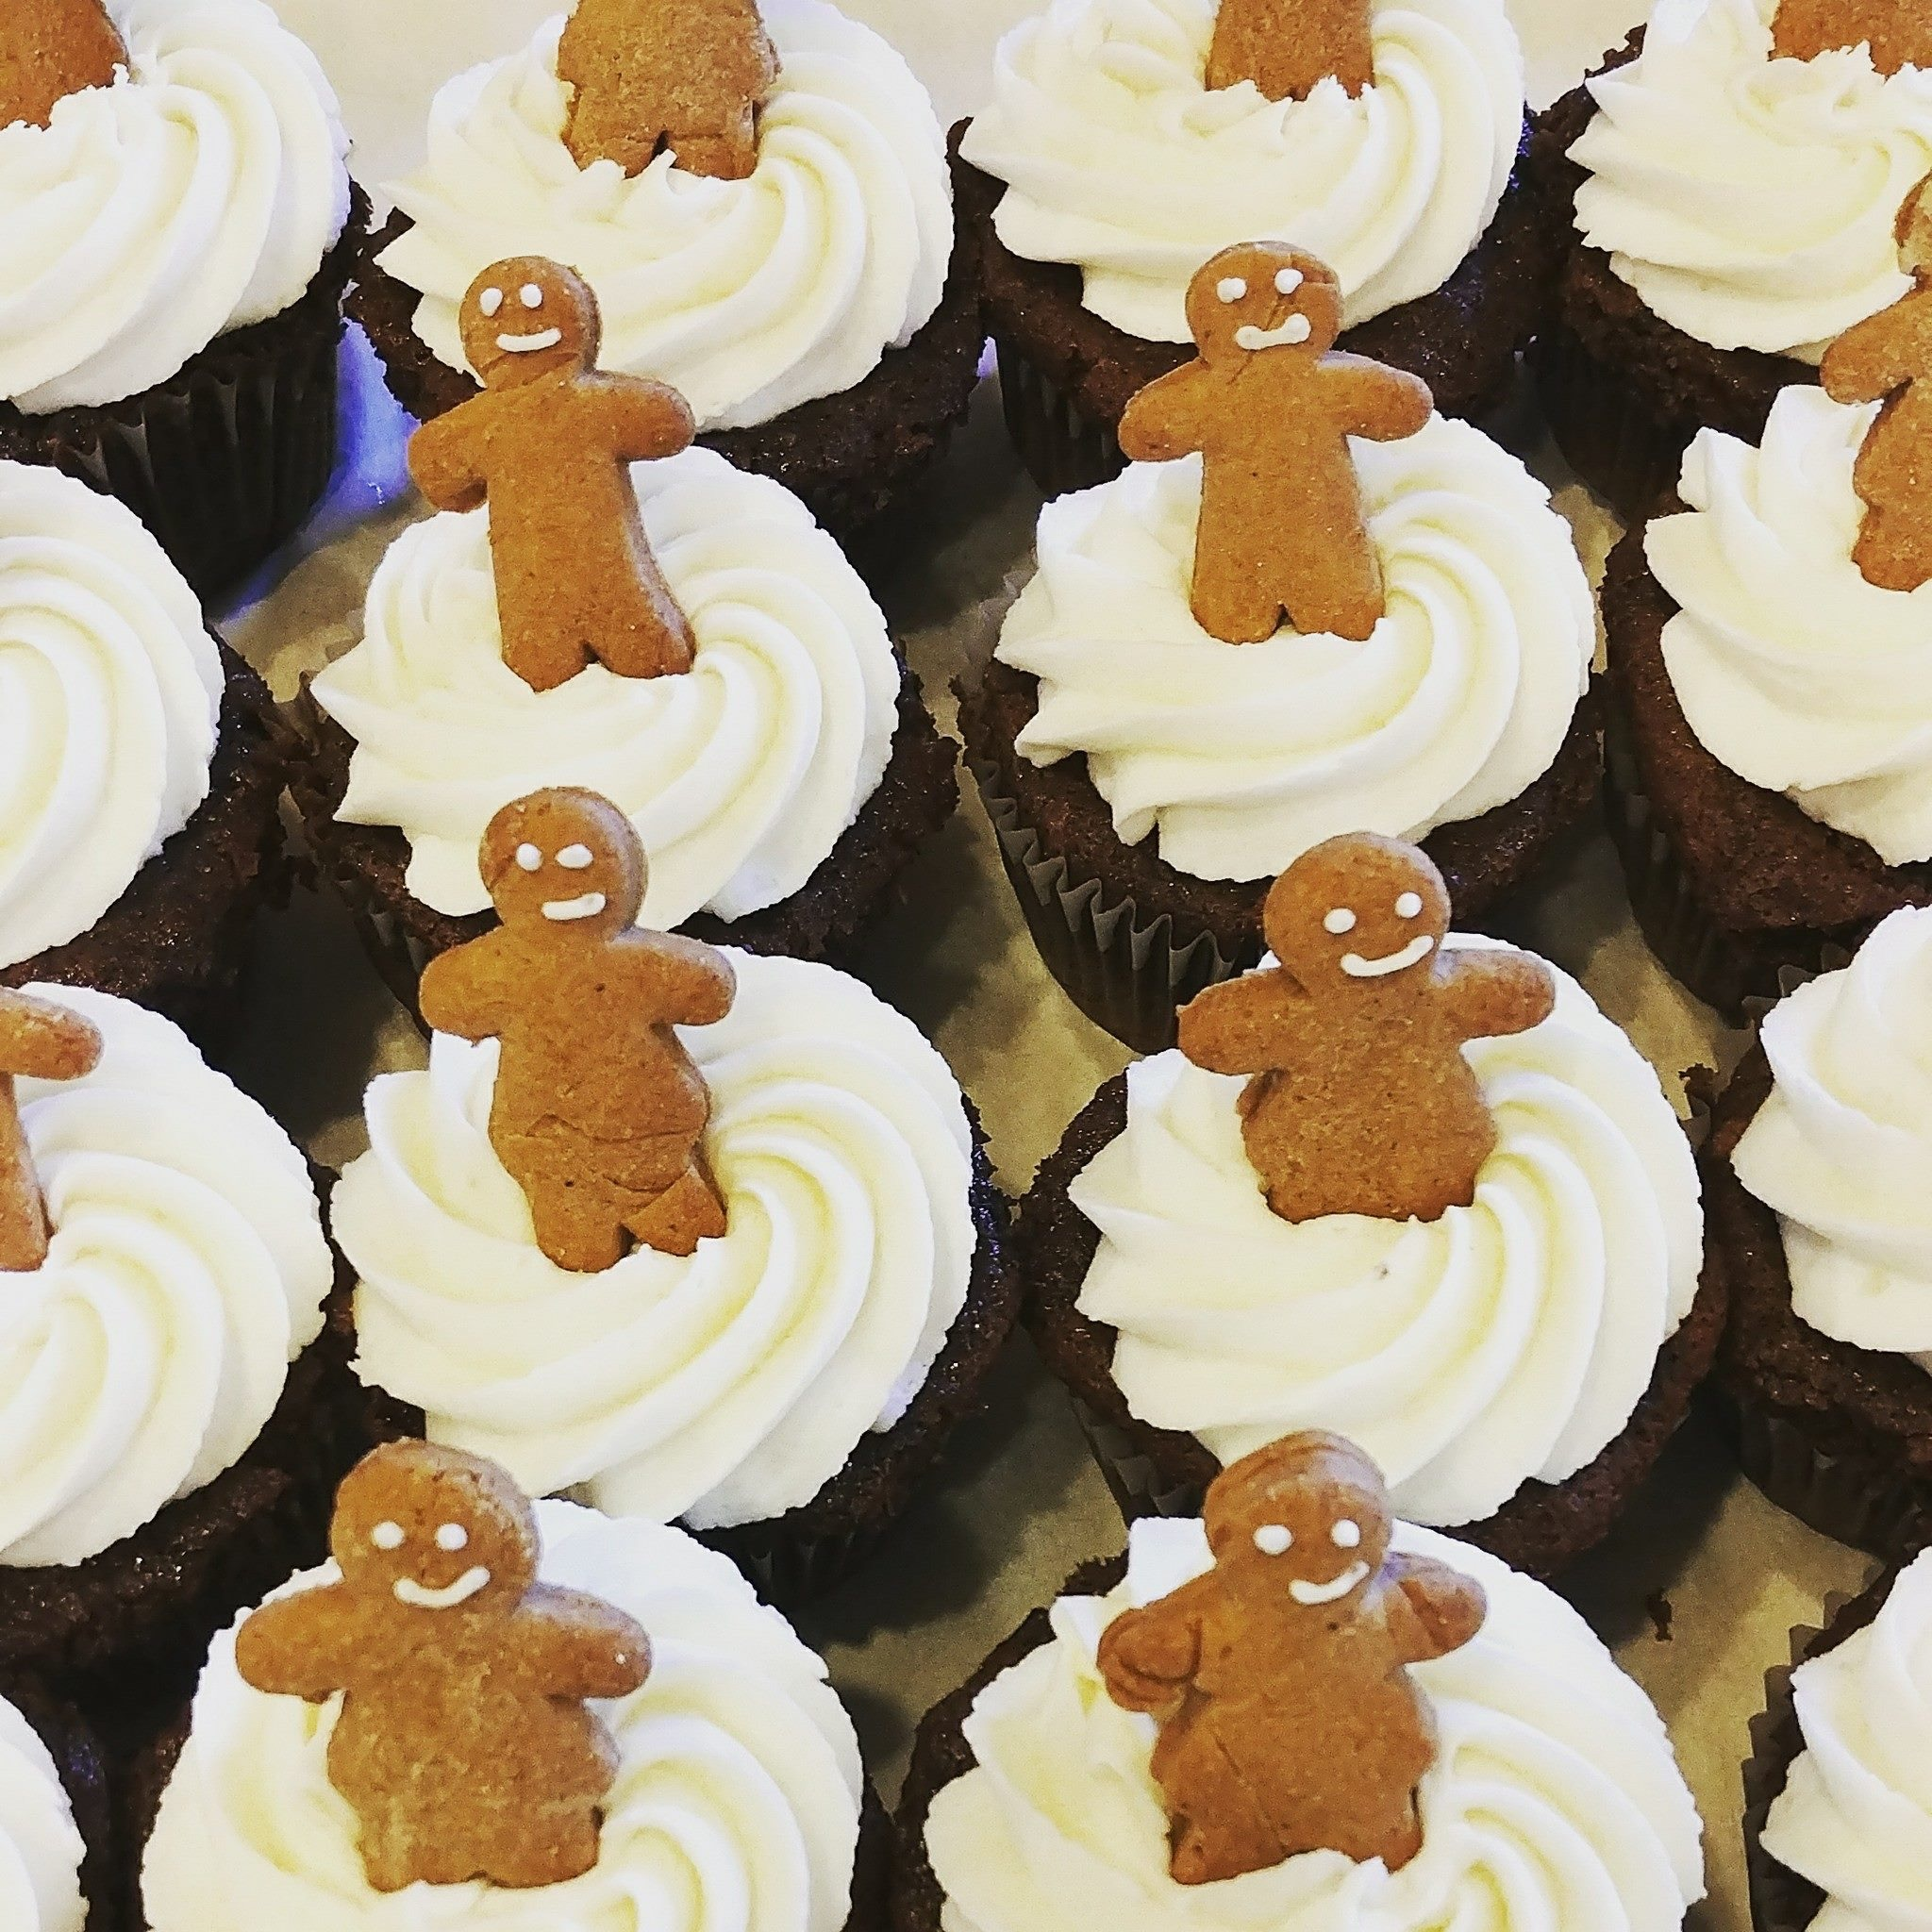 Gingerbread - Gingerbread Cake, Filled with Ginger Spice Frosting, Topped with Vanilla Frosting & a mini Gingerbread Person.*Seasonal, Available in December Only.*Can be Special Ordered as a Full Cake.